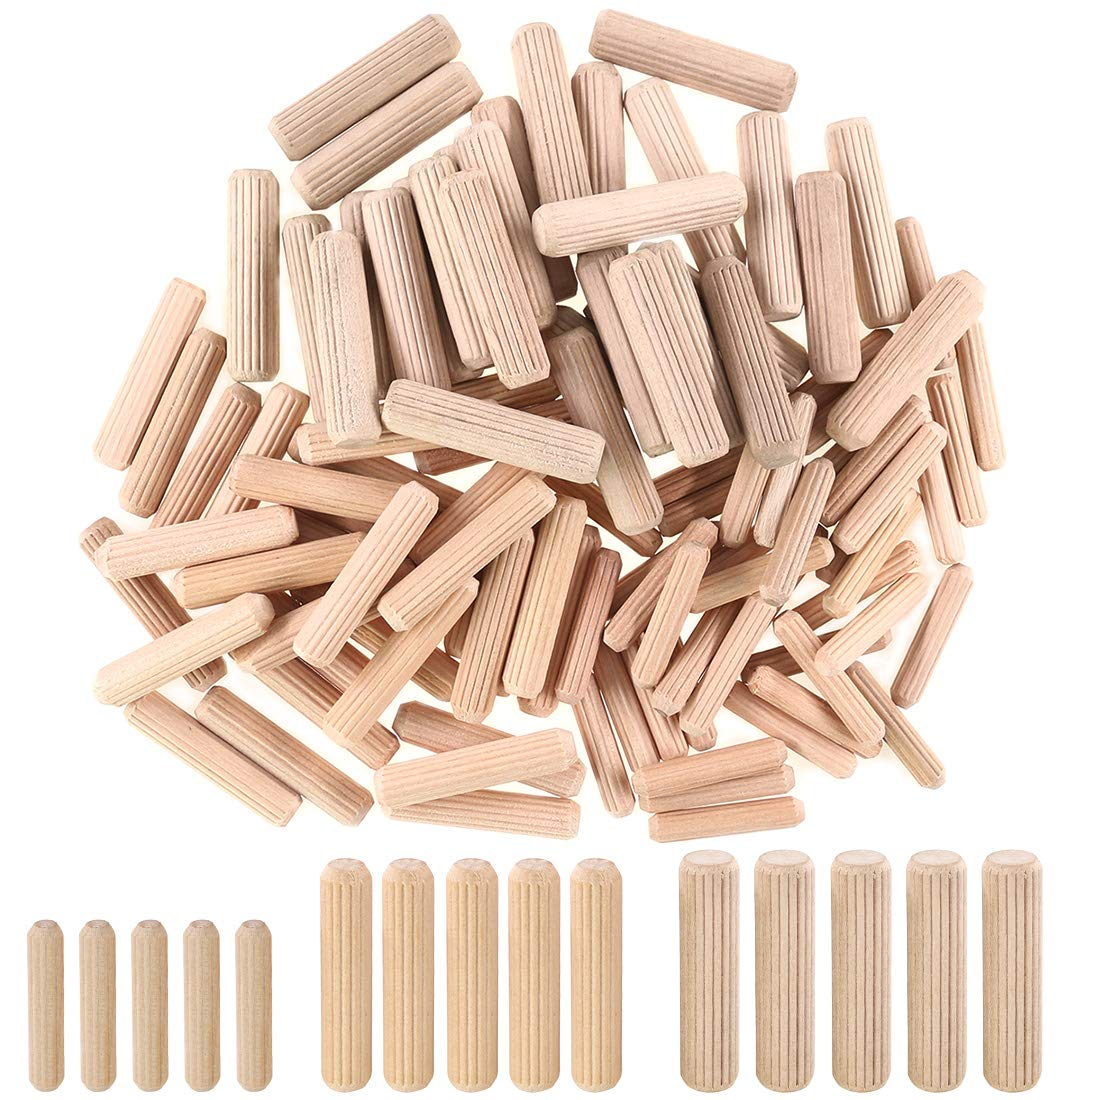 "Hilitchi 400pcs 1/4"" 5/16"" 3/8'' L Fluted Wood Dowel Pins Beveled Ends Tapered for Easier Insertion Straight Grooved Pins for Furniture Door and Art Projects"